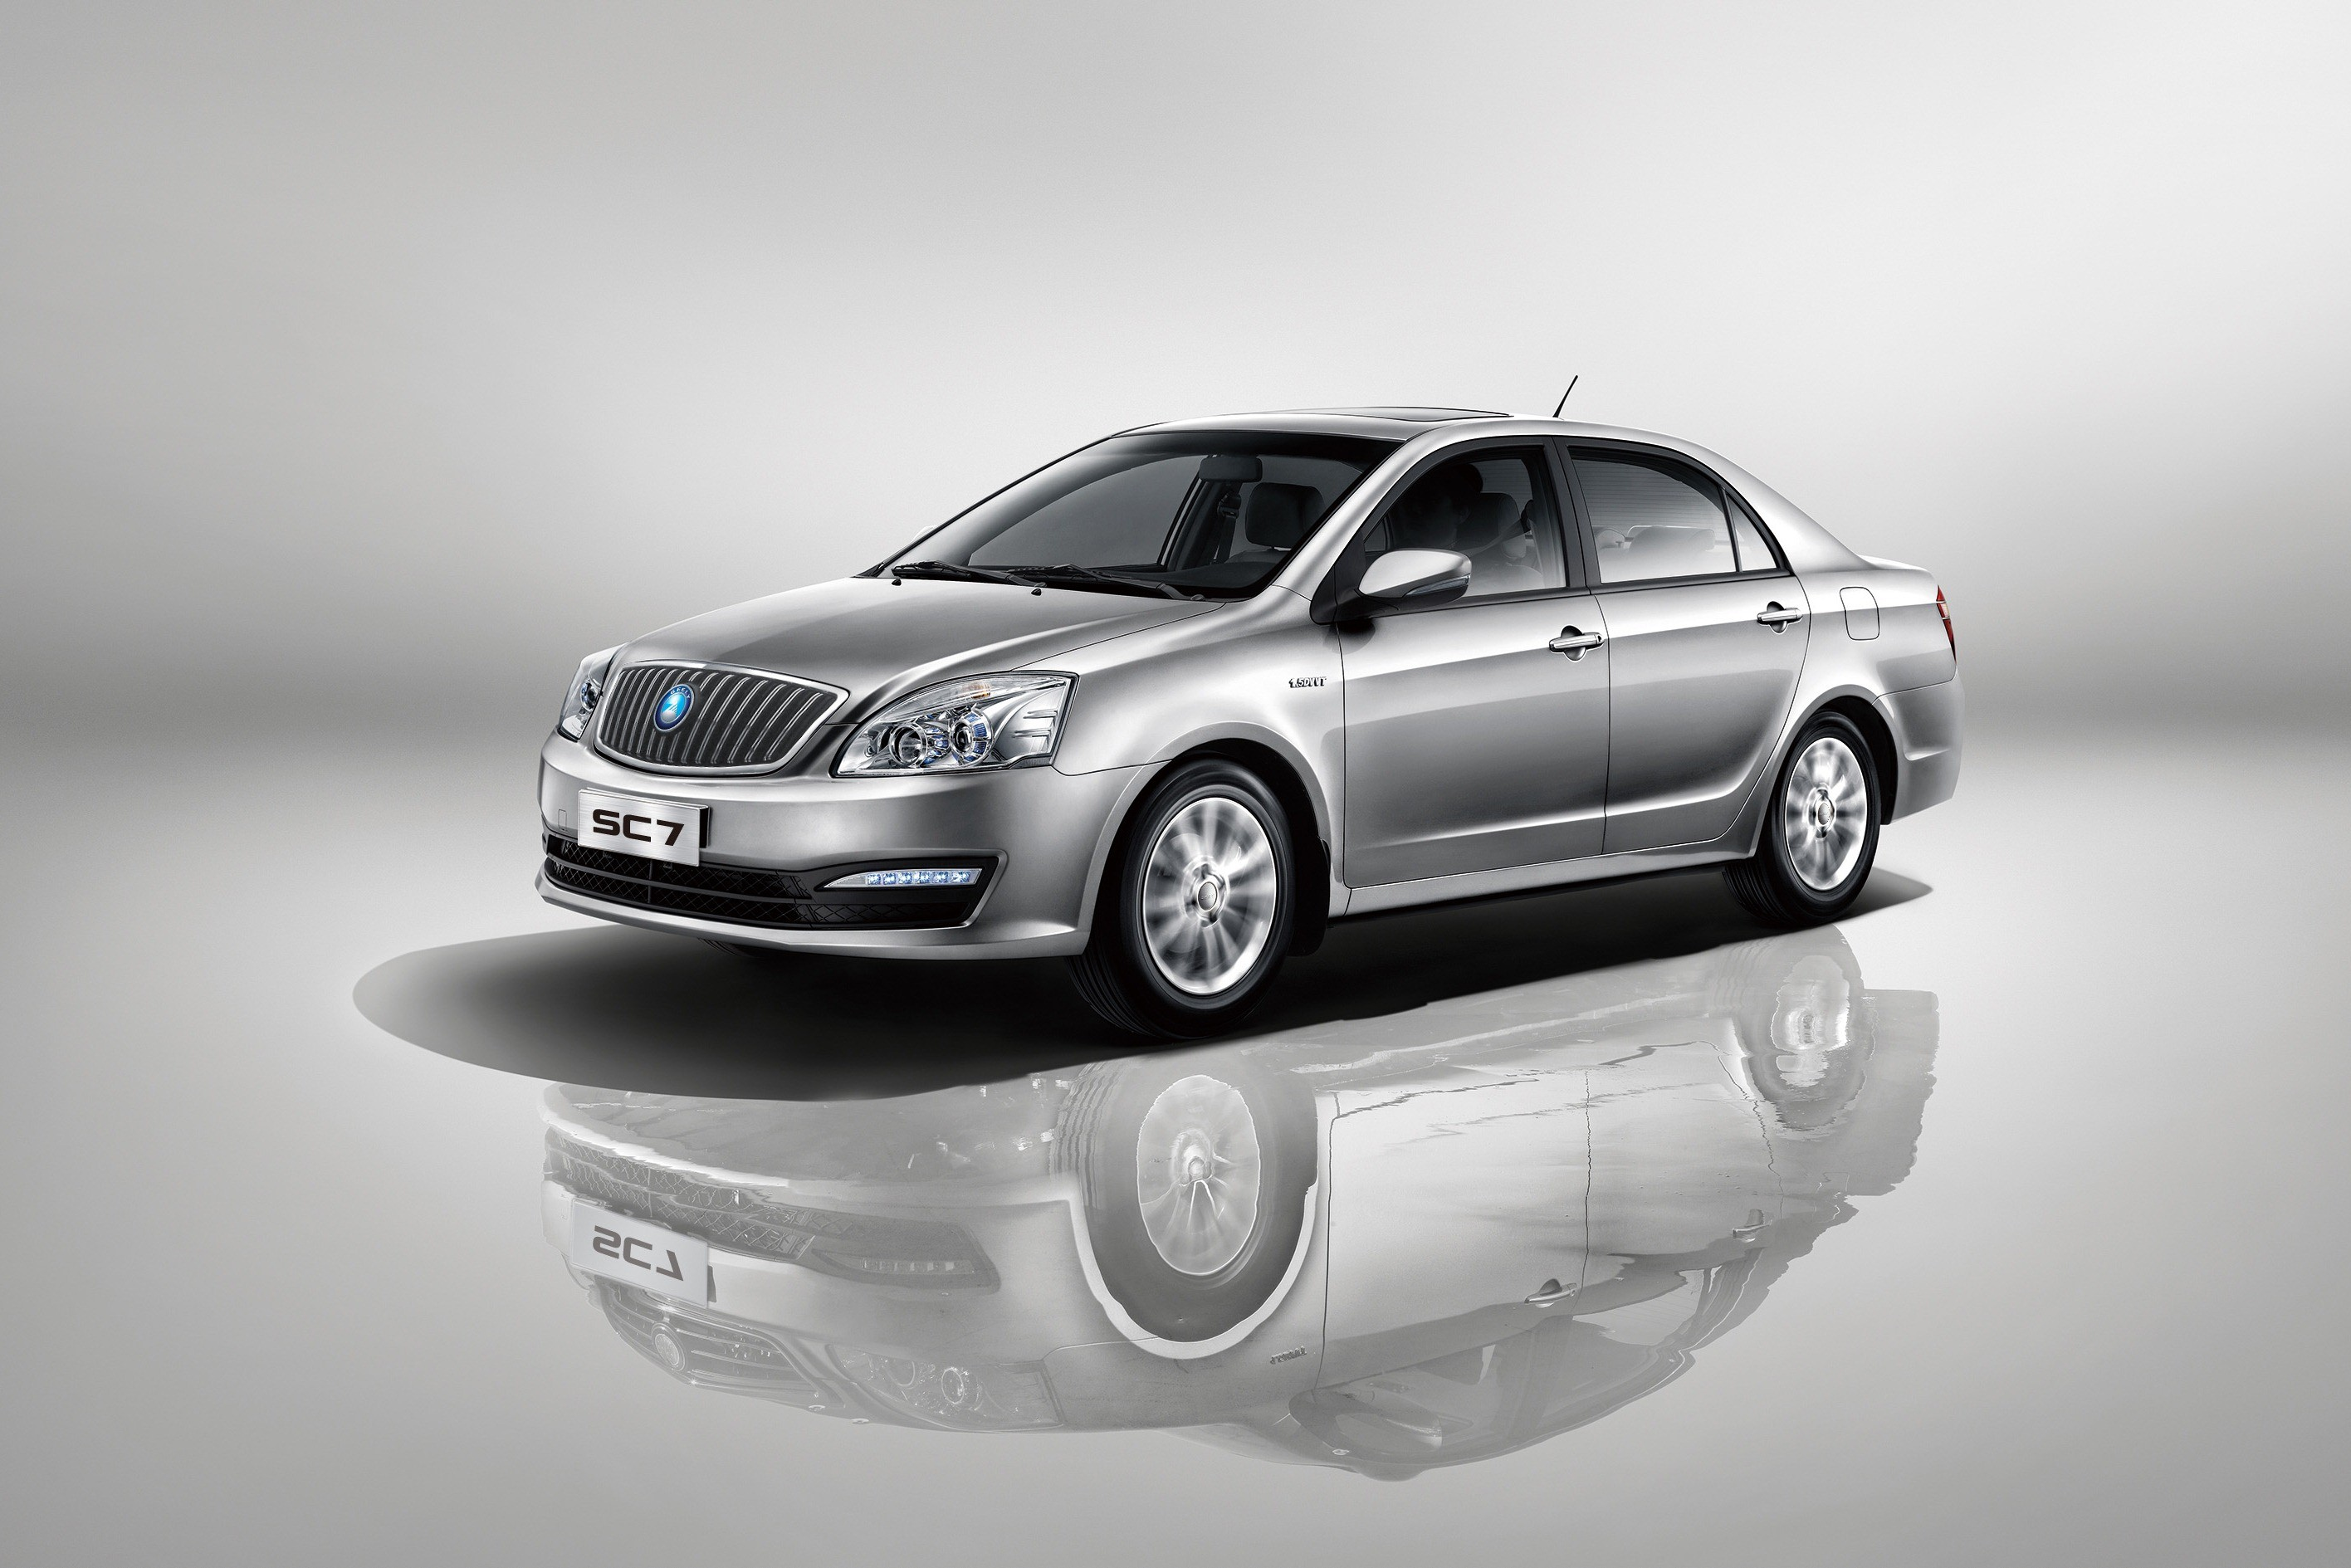 geely sc 7 images #6